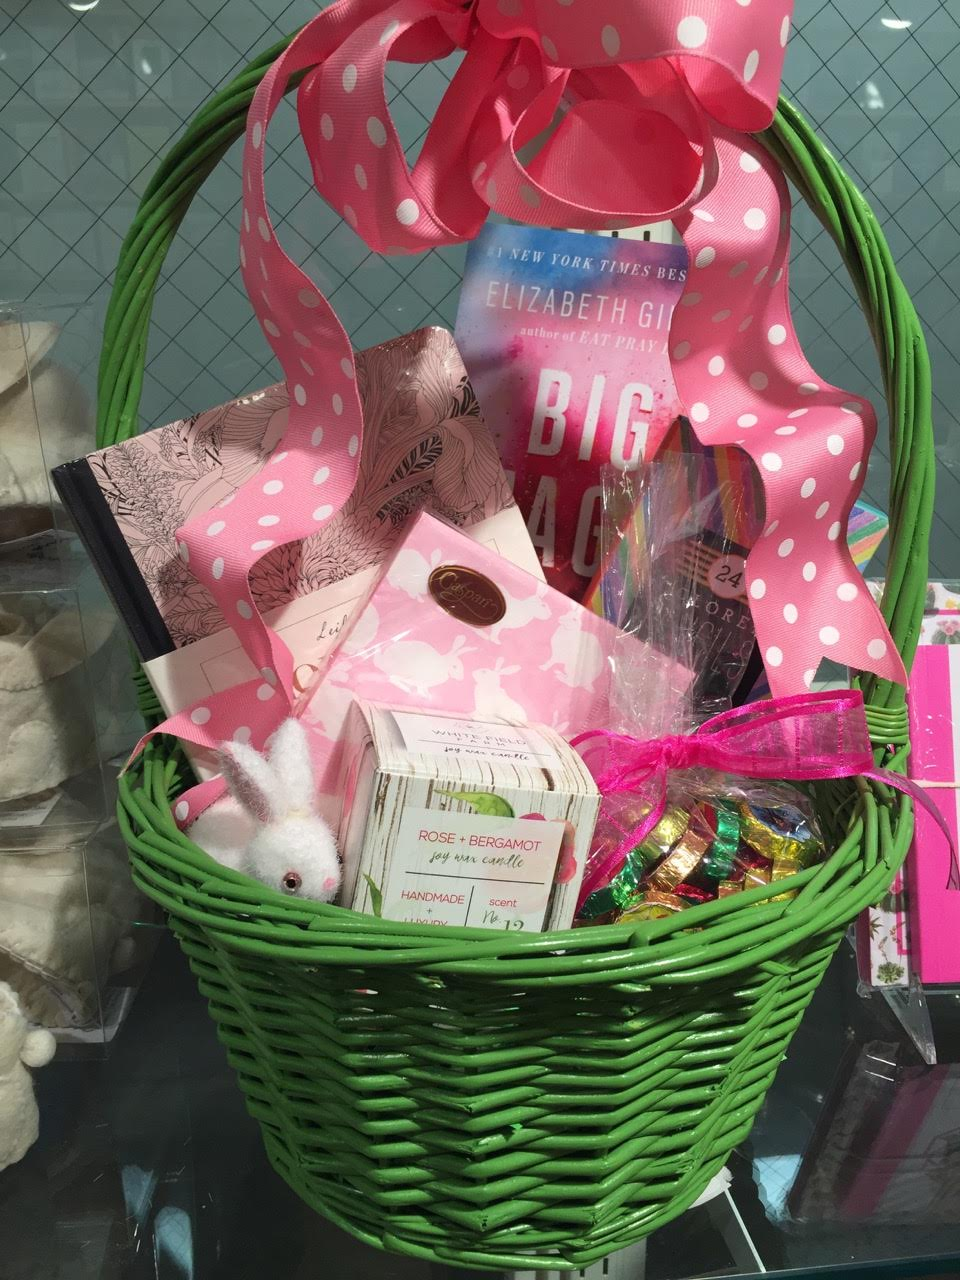 Christ church greenwich easter at the christ church bookstore easter baskets are not just for children make a basket for someone you love like this one with a scented candle pretty napkins journal bag of chocolate negle Gallery